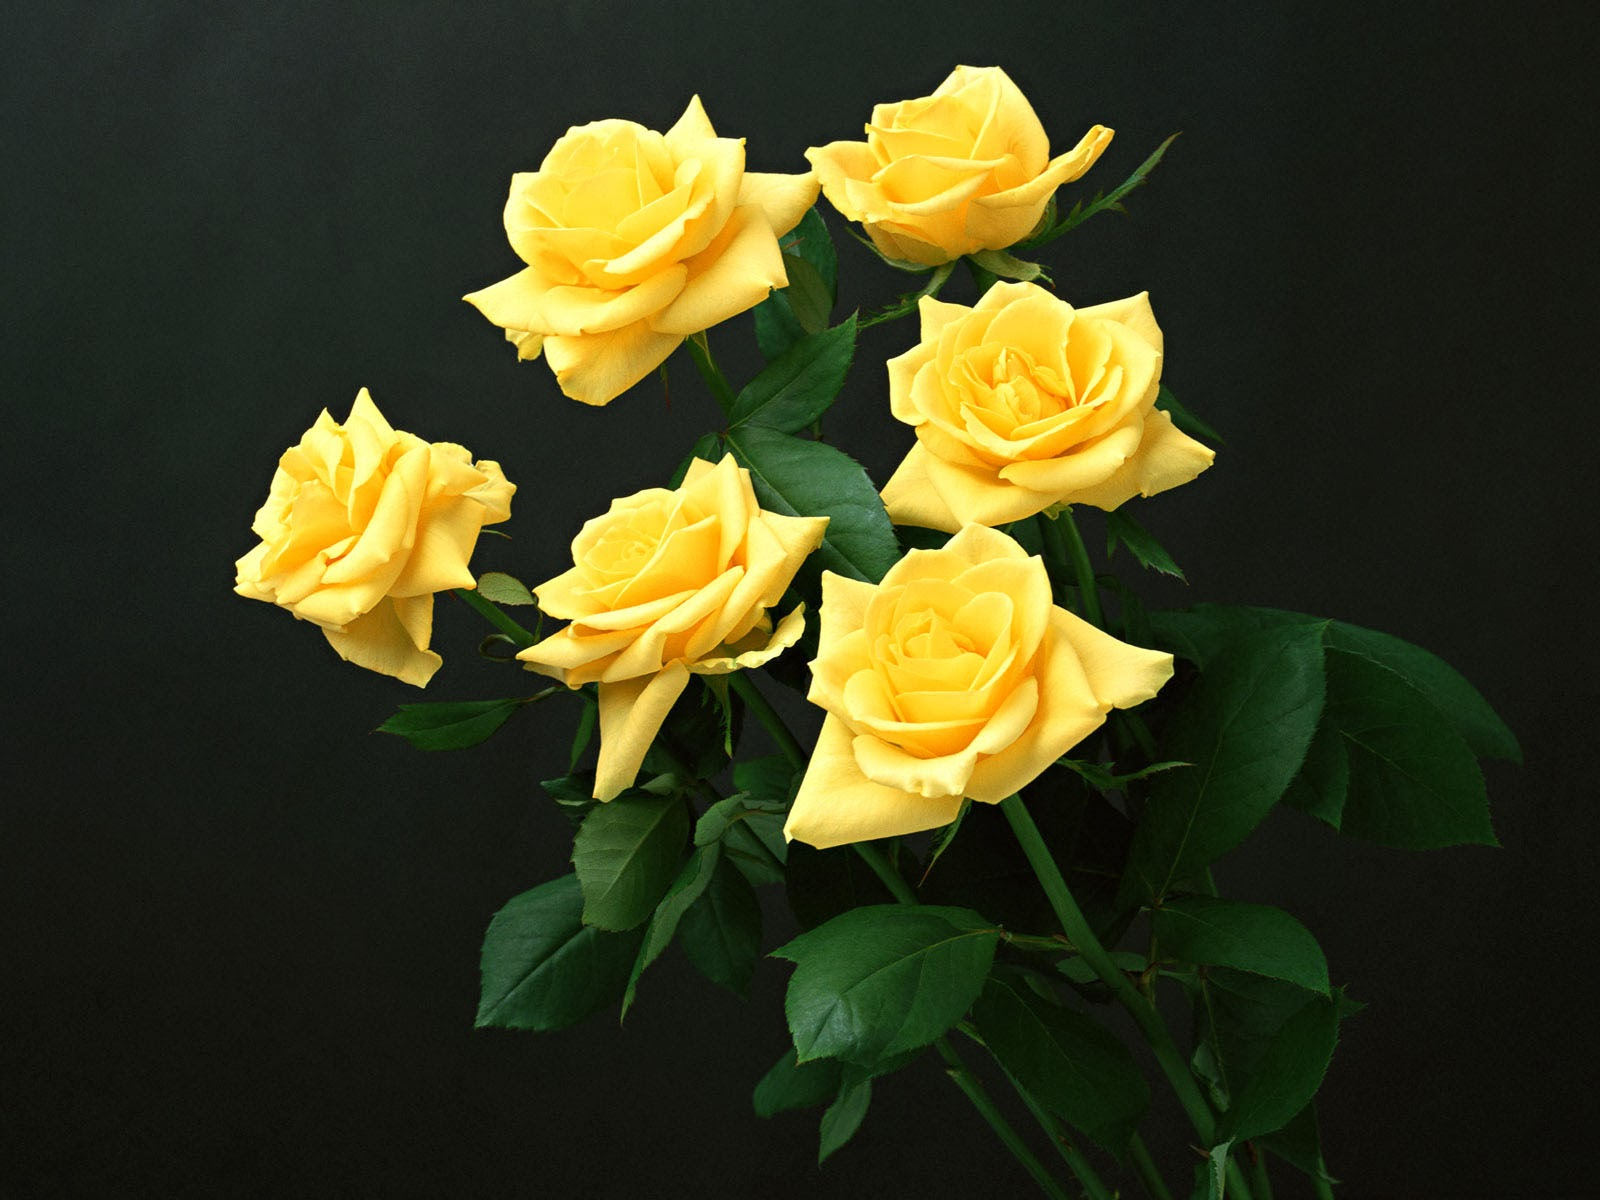 wallpaper of yellow roses - photo #1